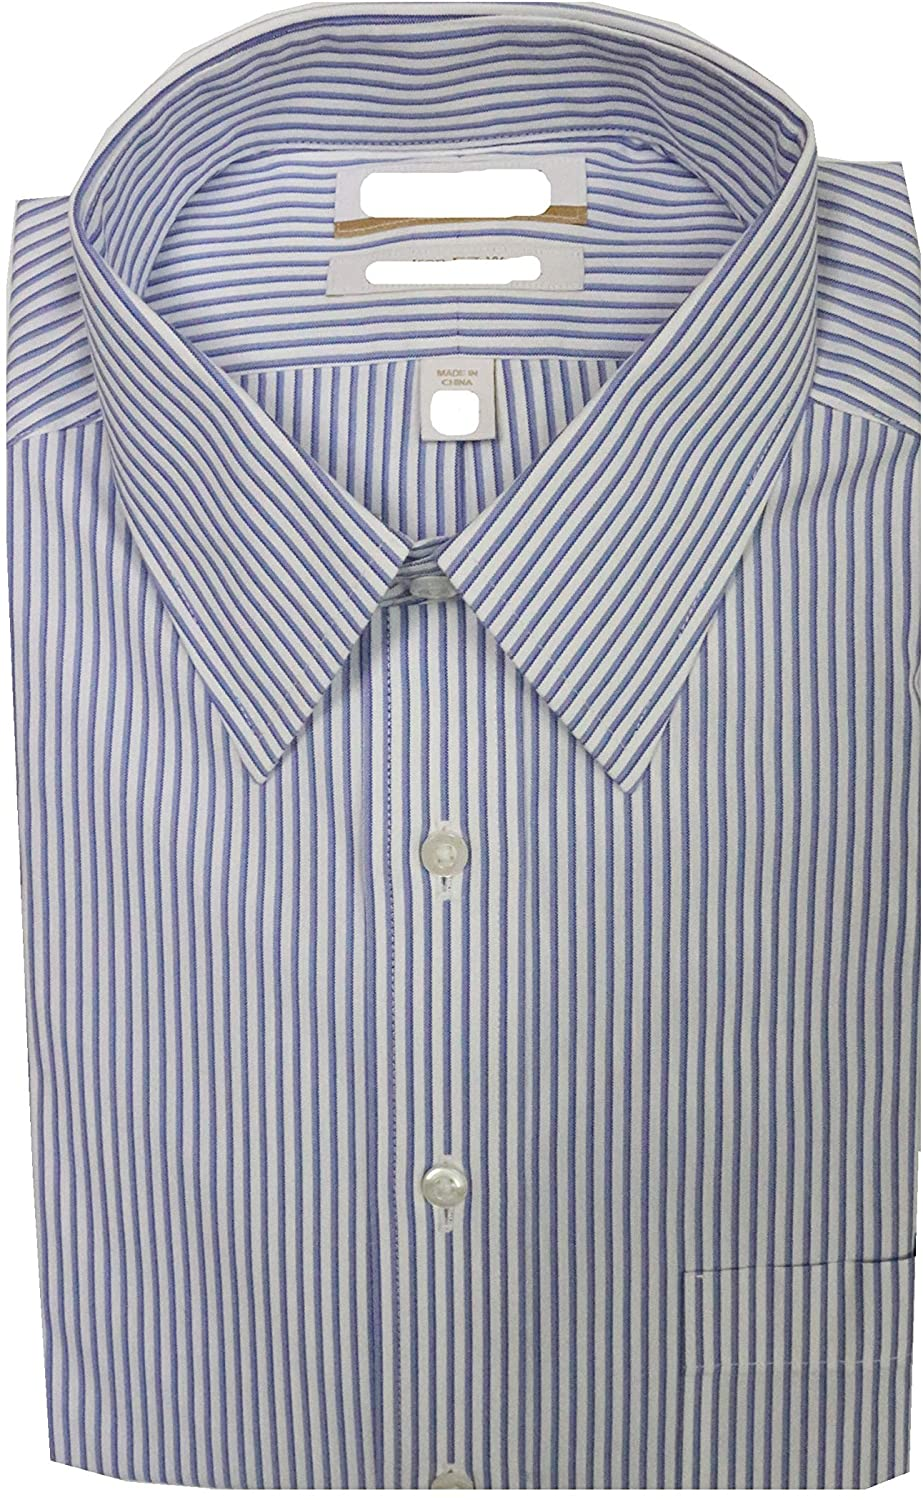 Gold Label Roundtree & Yorke Non-Iron Regular Pointed Collar Stripe Dress Shirt S95DG044 Blue Multi